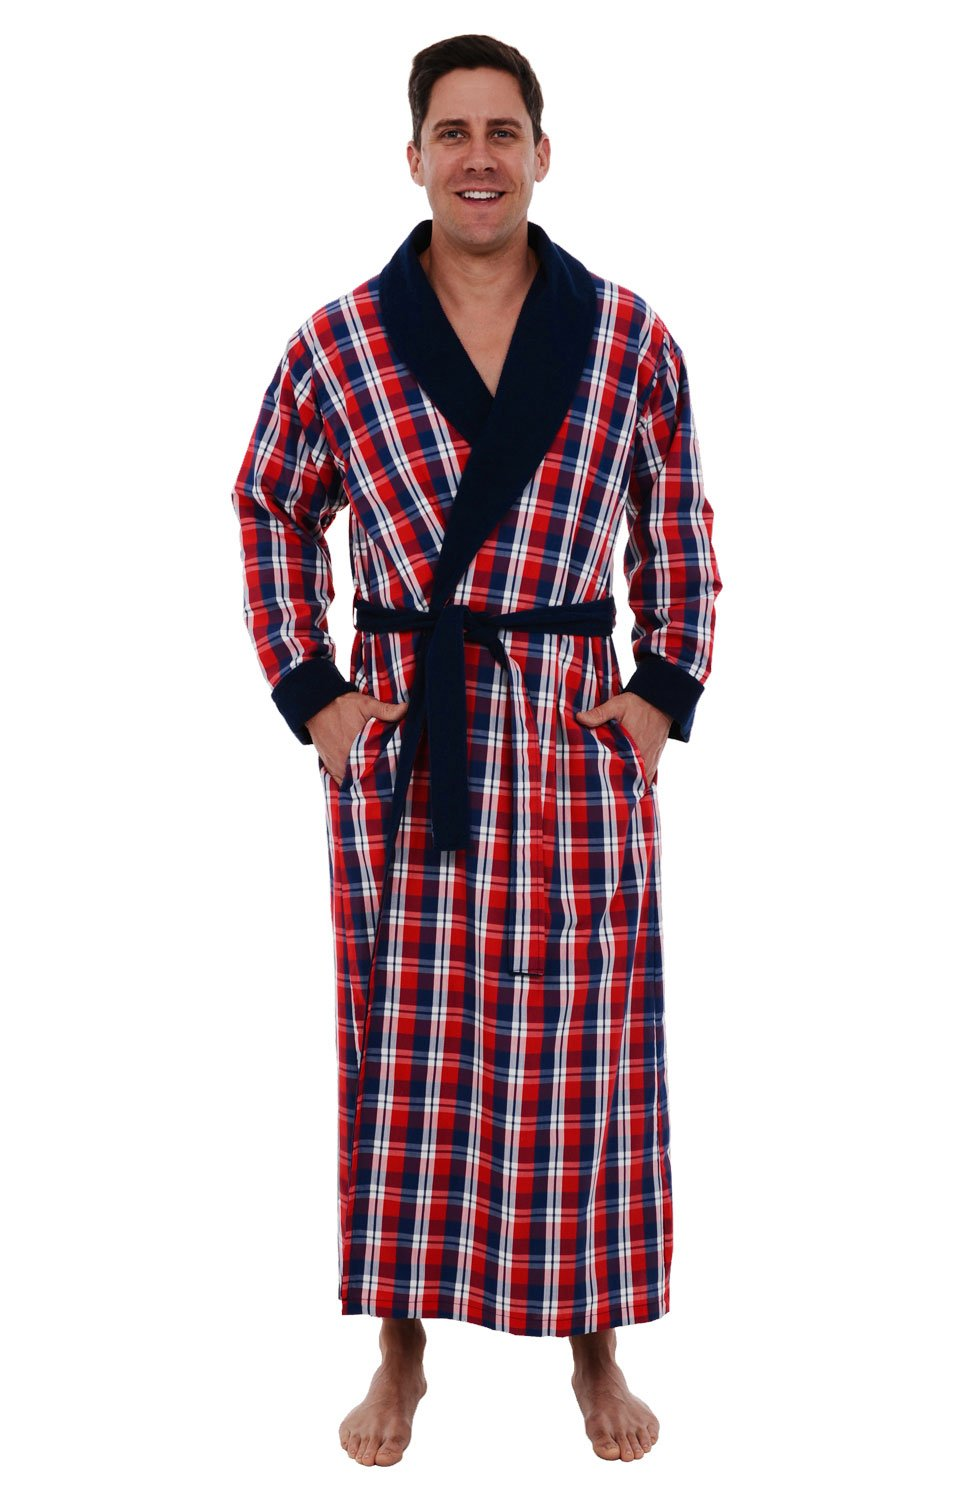 Alexander Del Rossa Del Rossa Mens Turkish Terry Cloth Robe, Woven Shell Long Bathrobe, Blue and Red Plaid Large XL (A0140P40XL) by Alexander Del Rossa (Image #1)